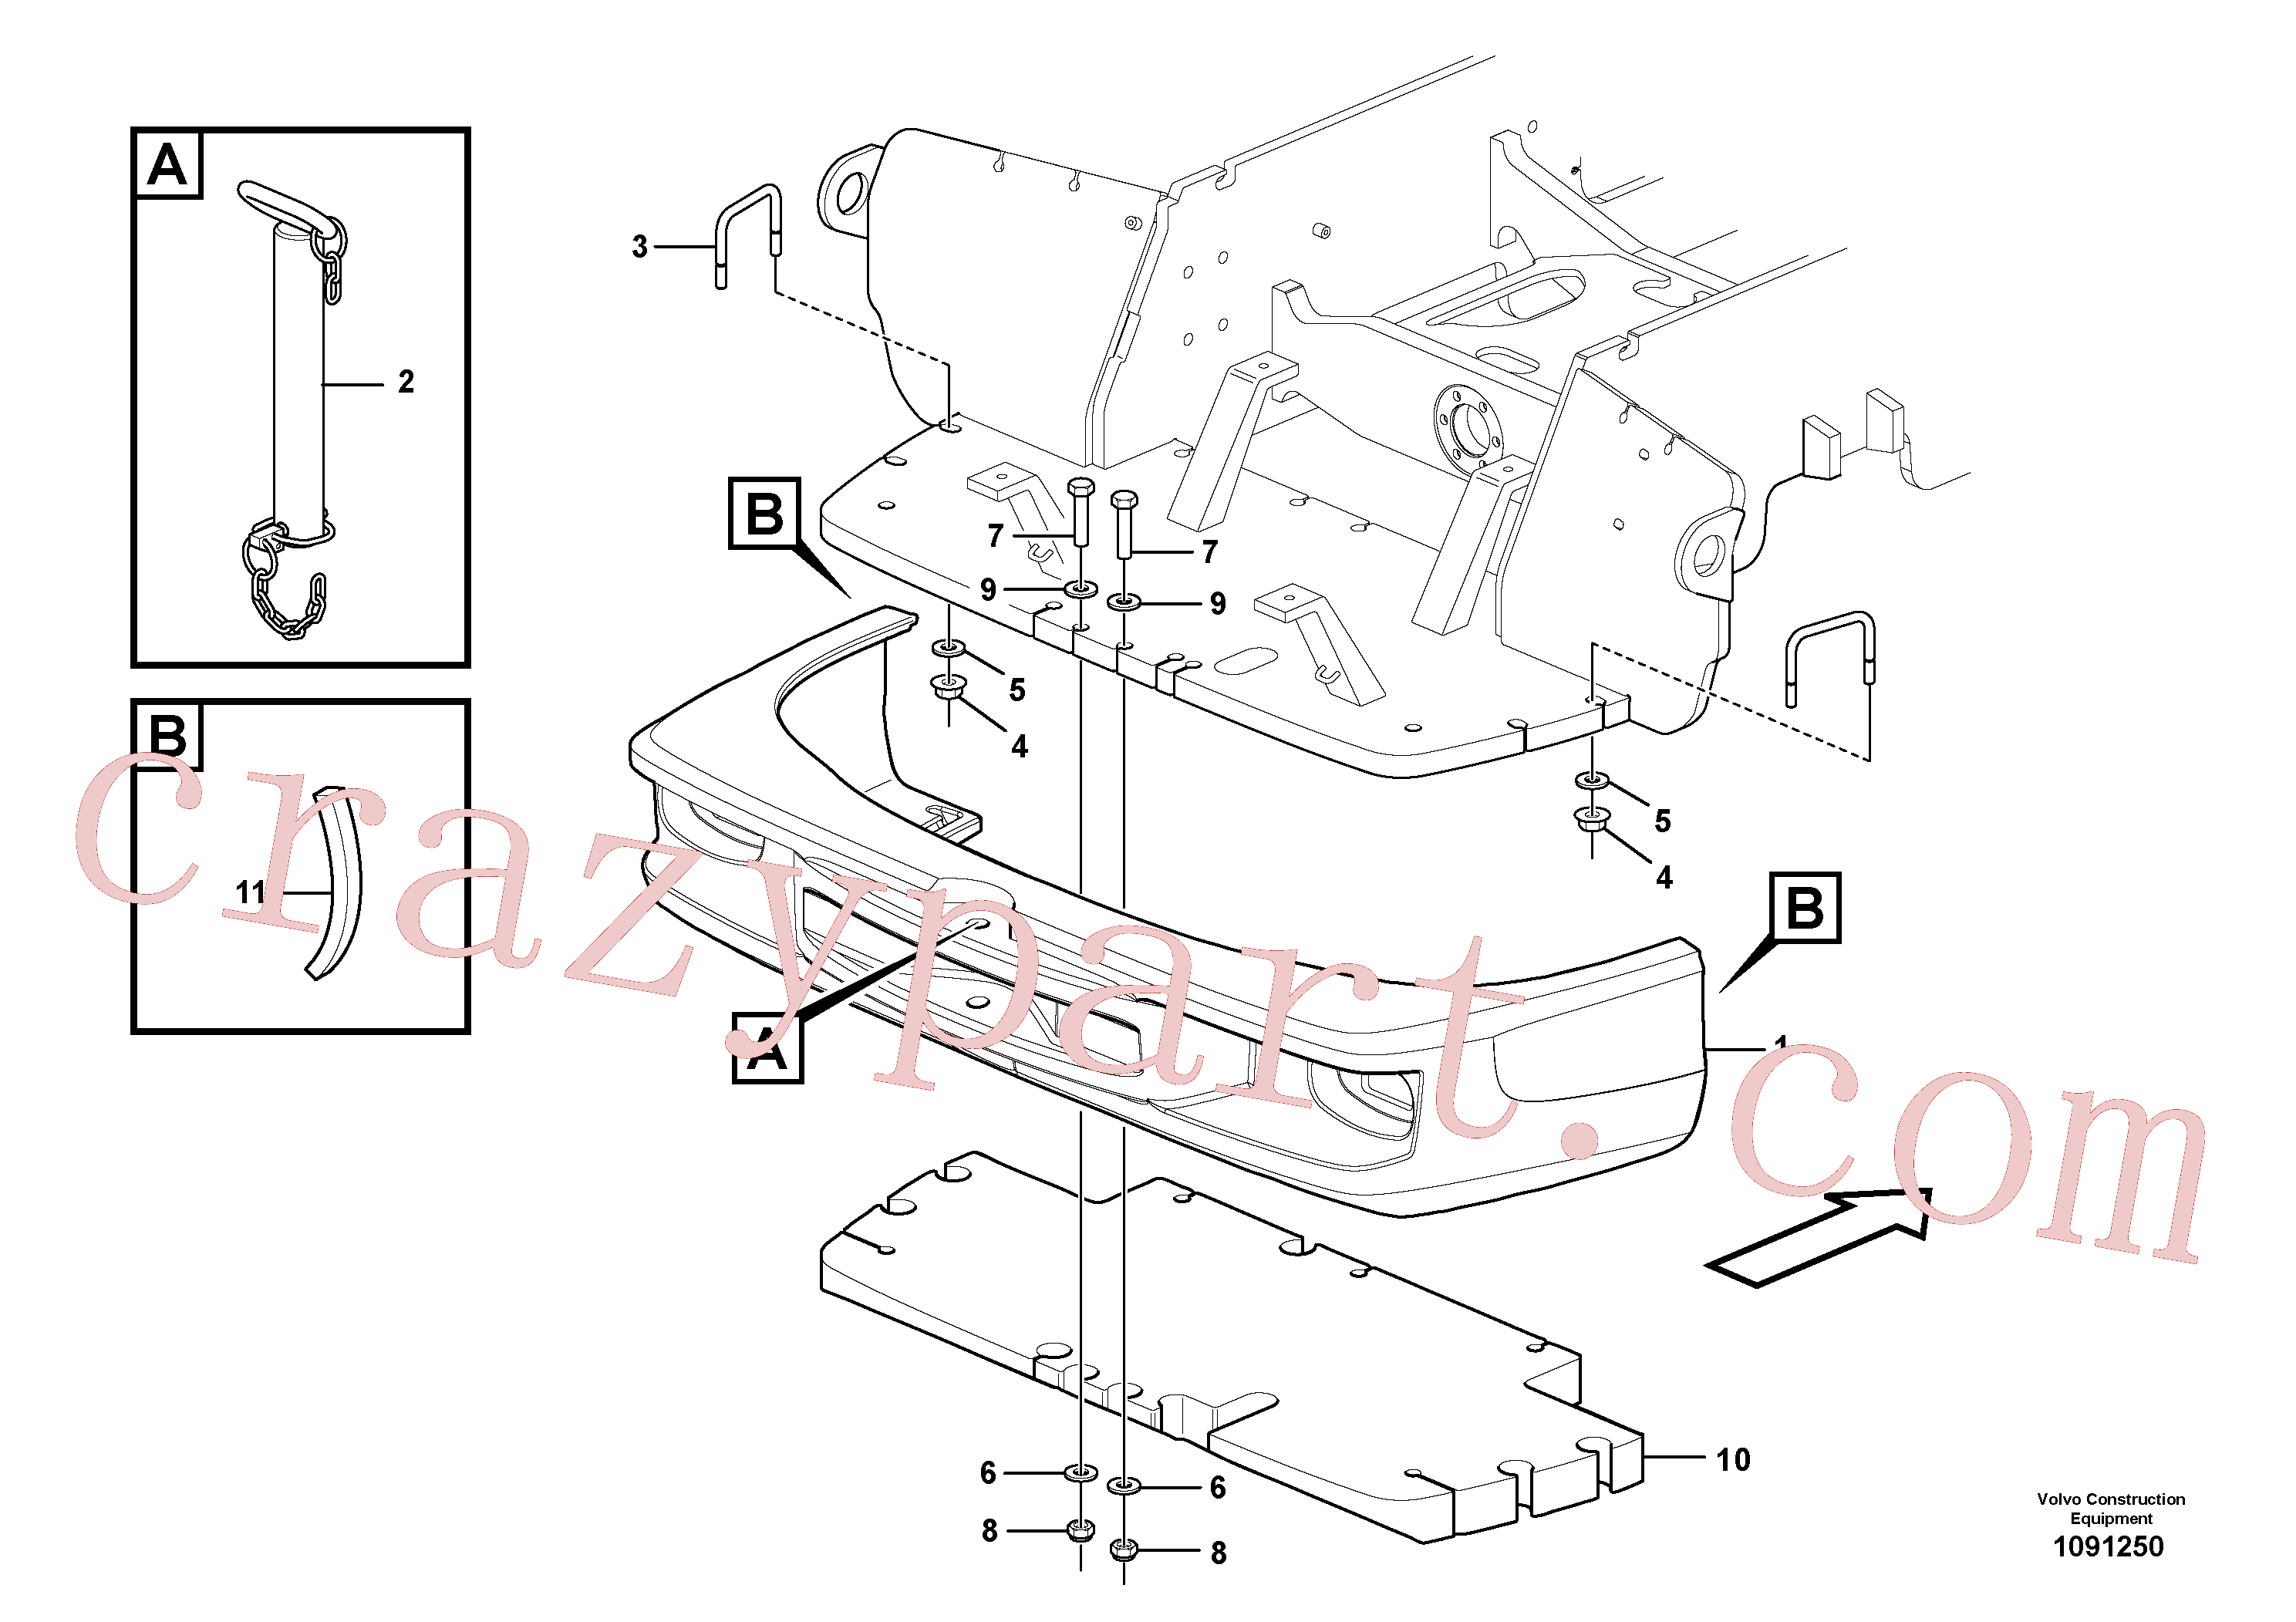 ZM4334202 for Volvo Counterweights(1091250 assembly)